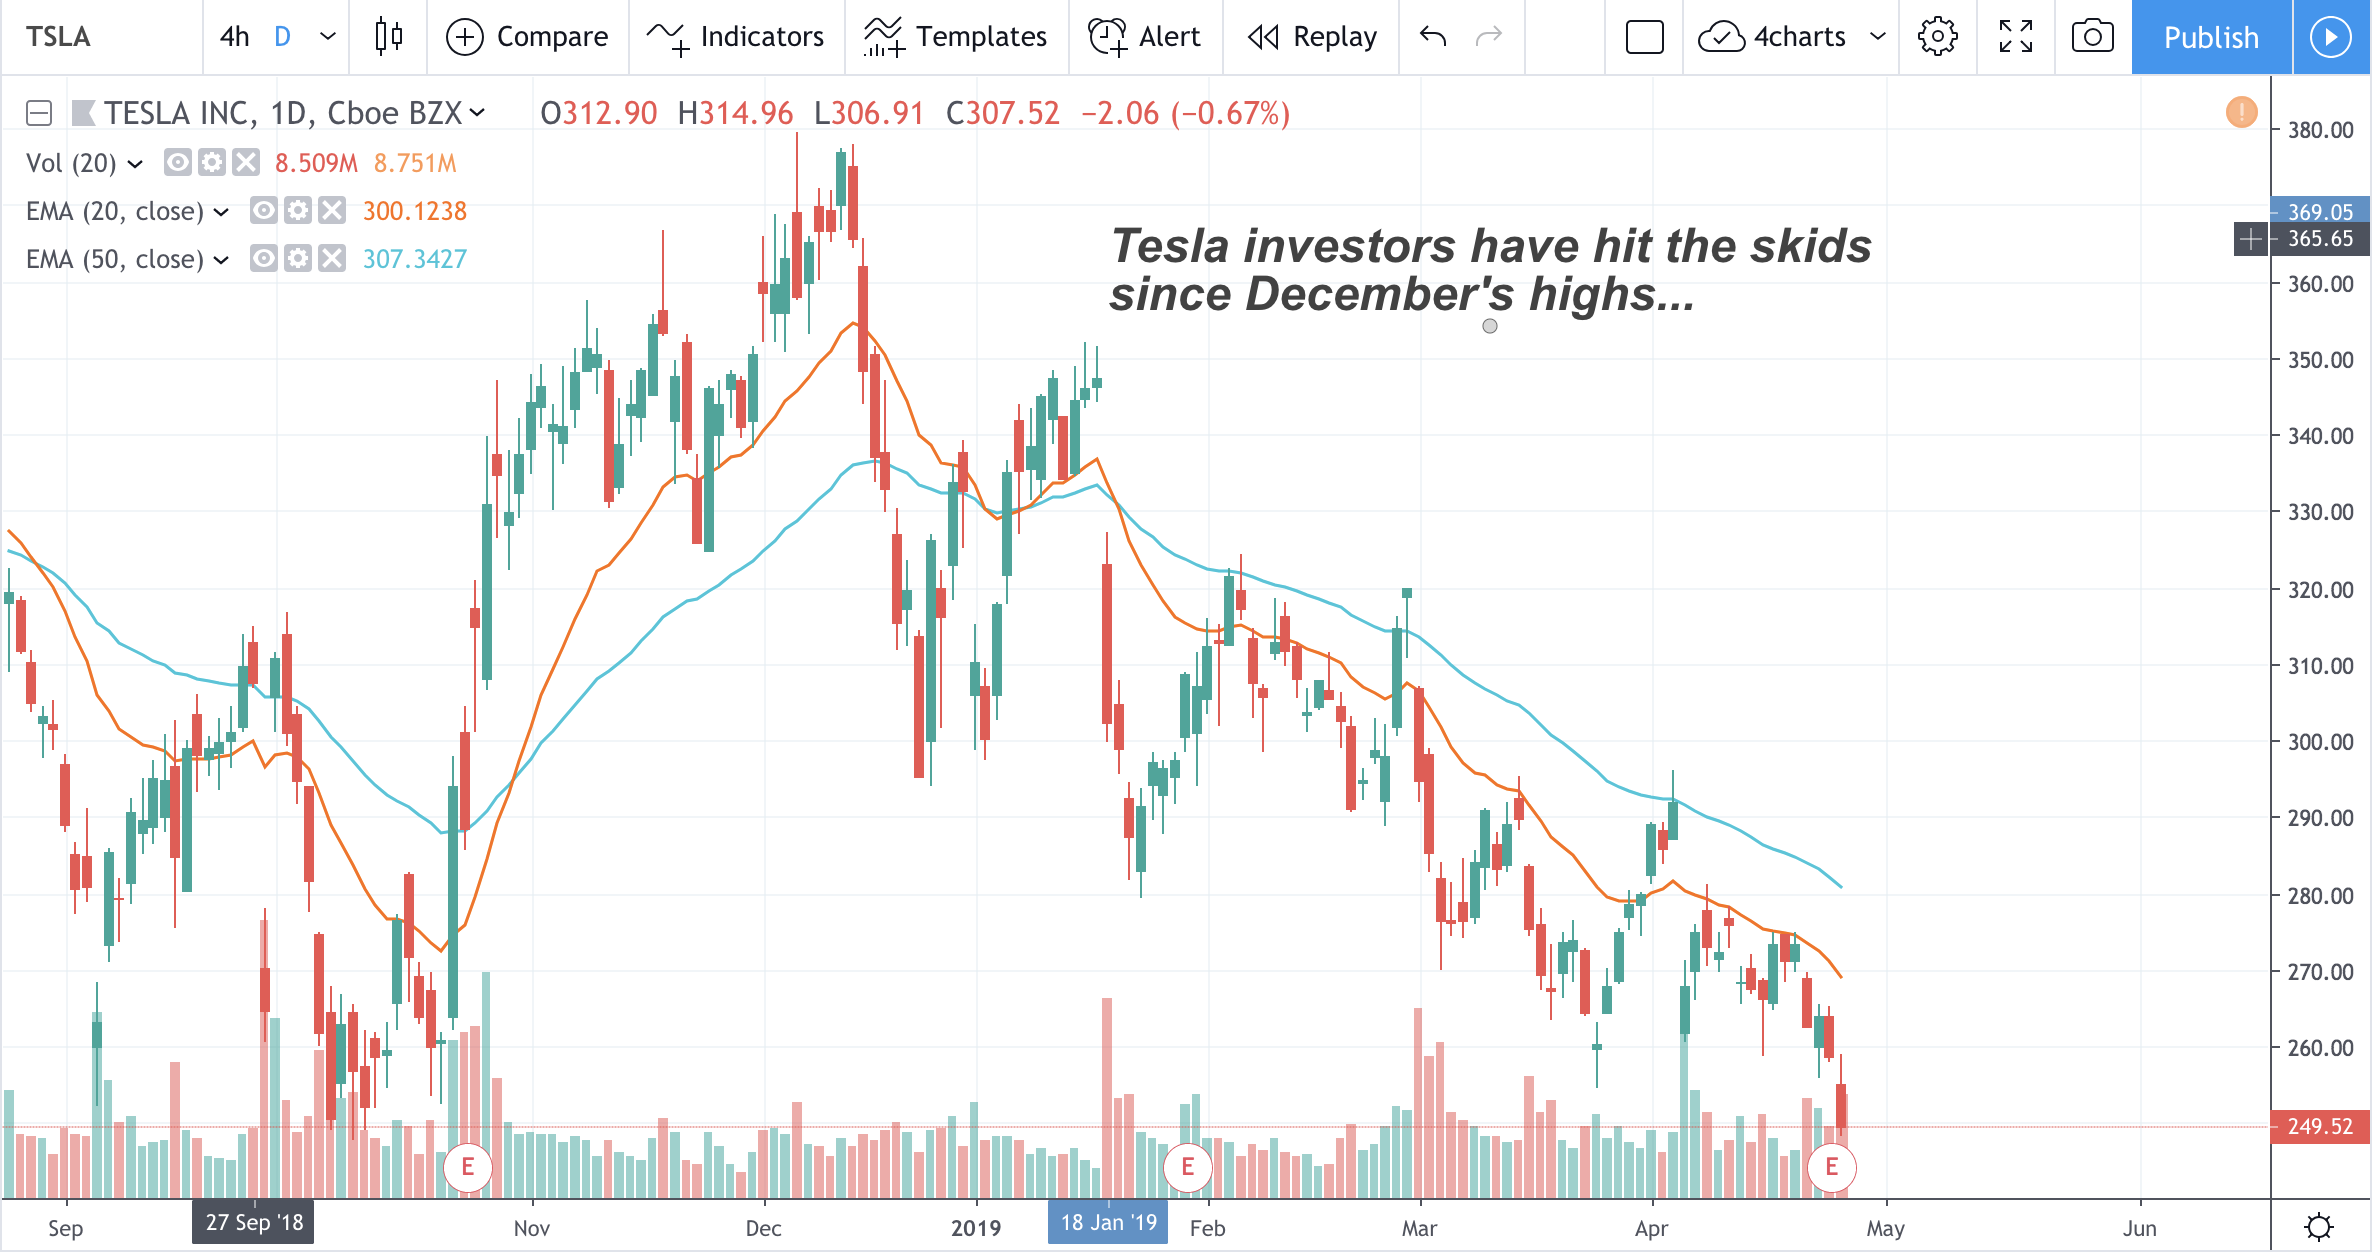 When you take a look into Tesla's long-term plan, it's possible that this could be the most valuable company in the world in 10 years.